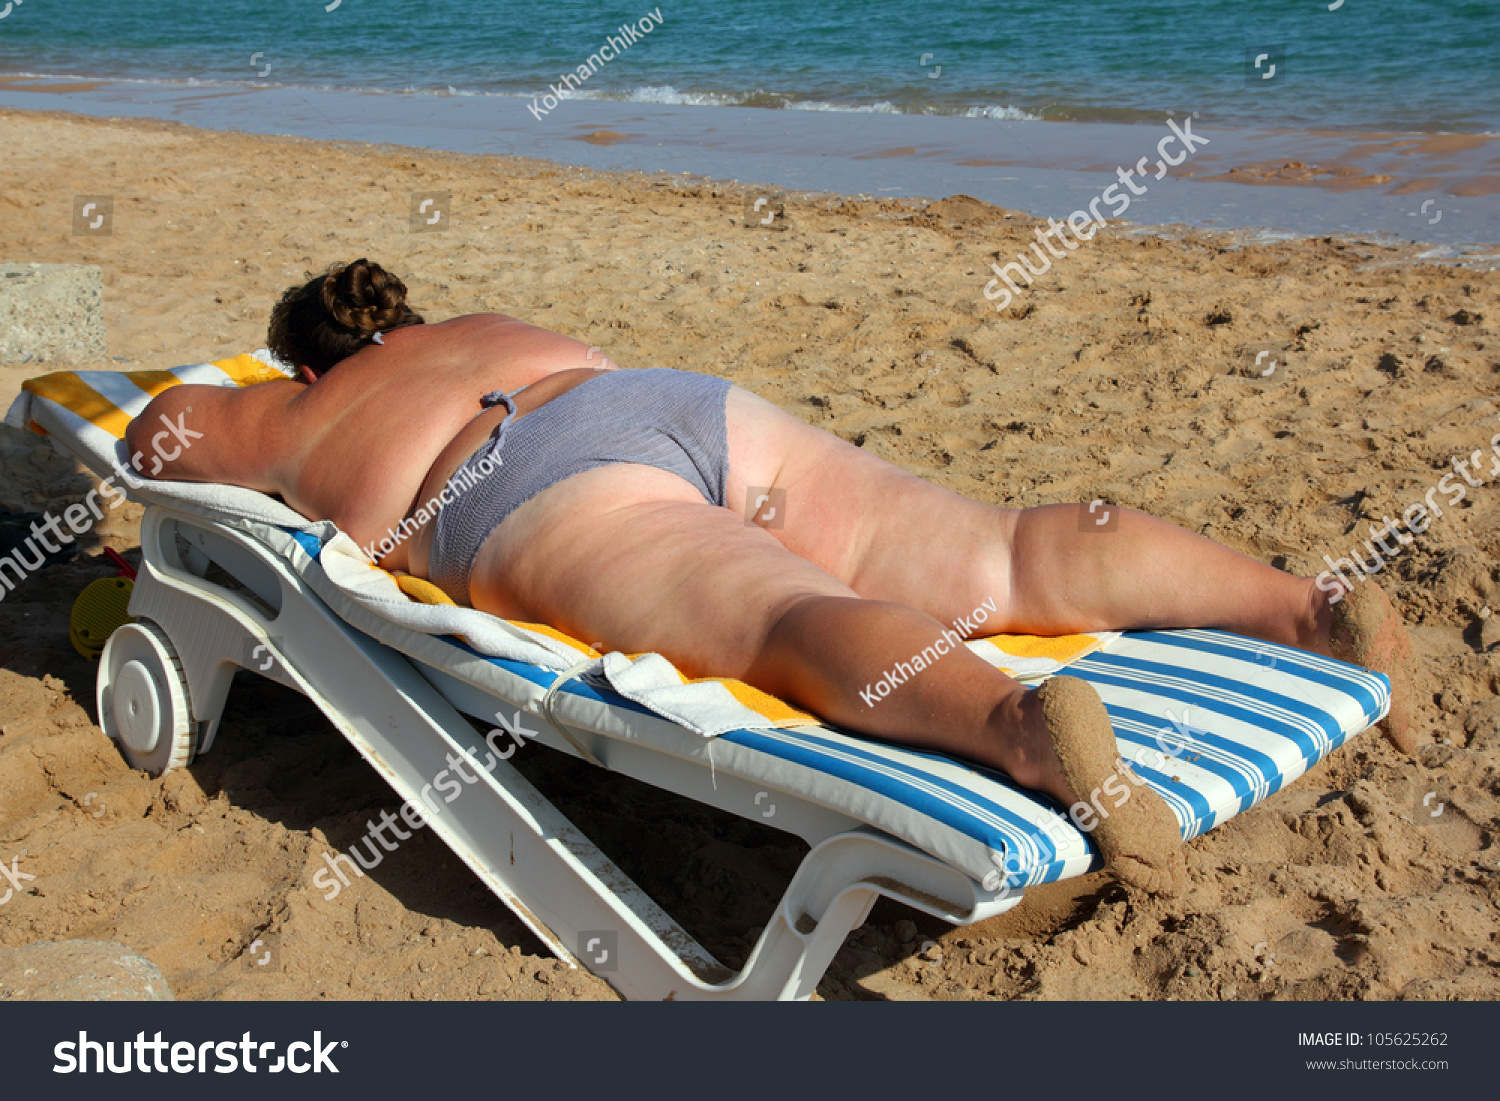 stock-photo-vacation-overweight-woman-su